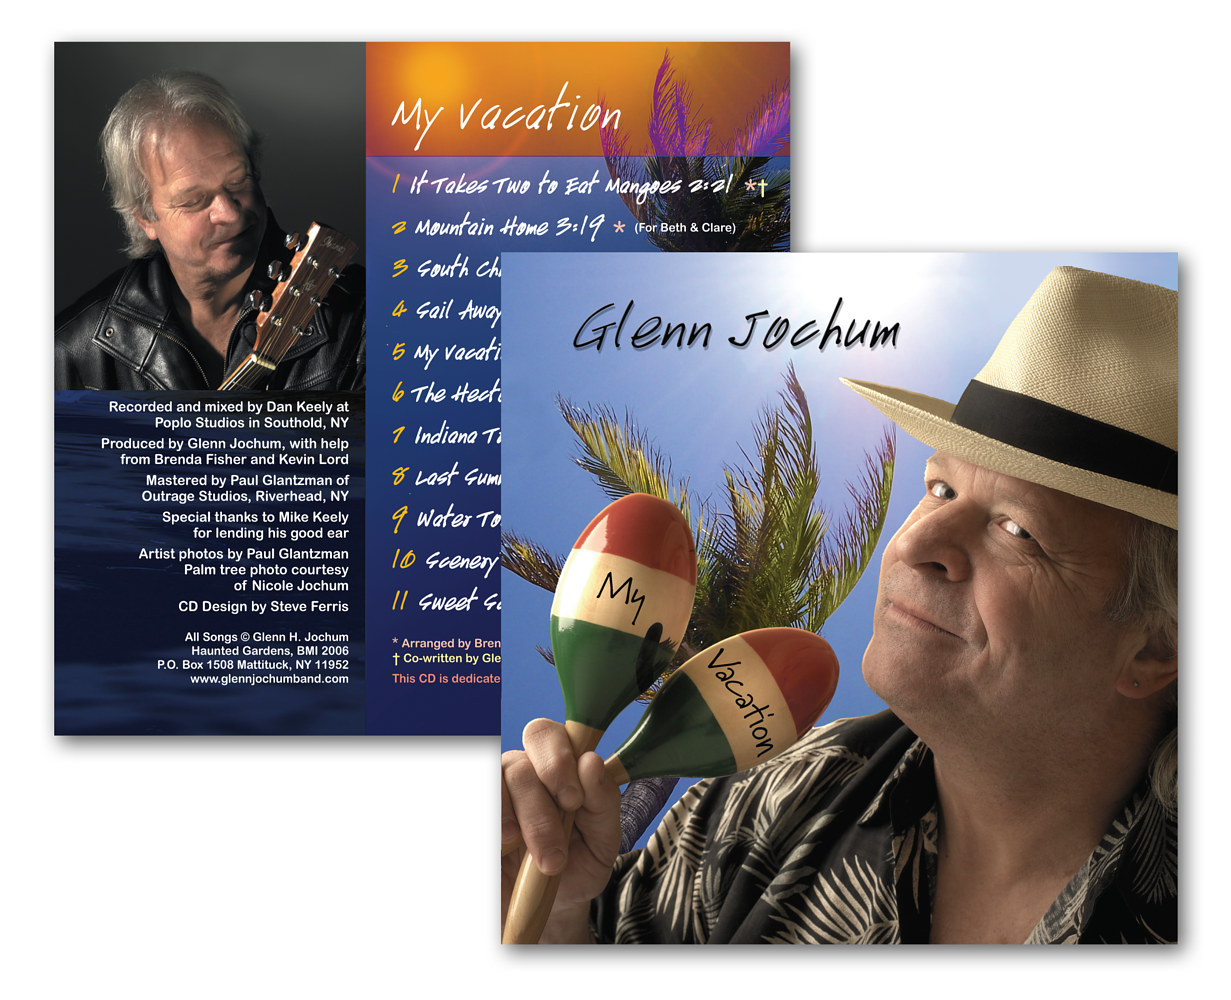 My Vacation-Glenn Jochum by Steve Ferris